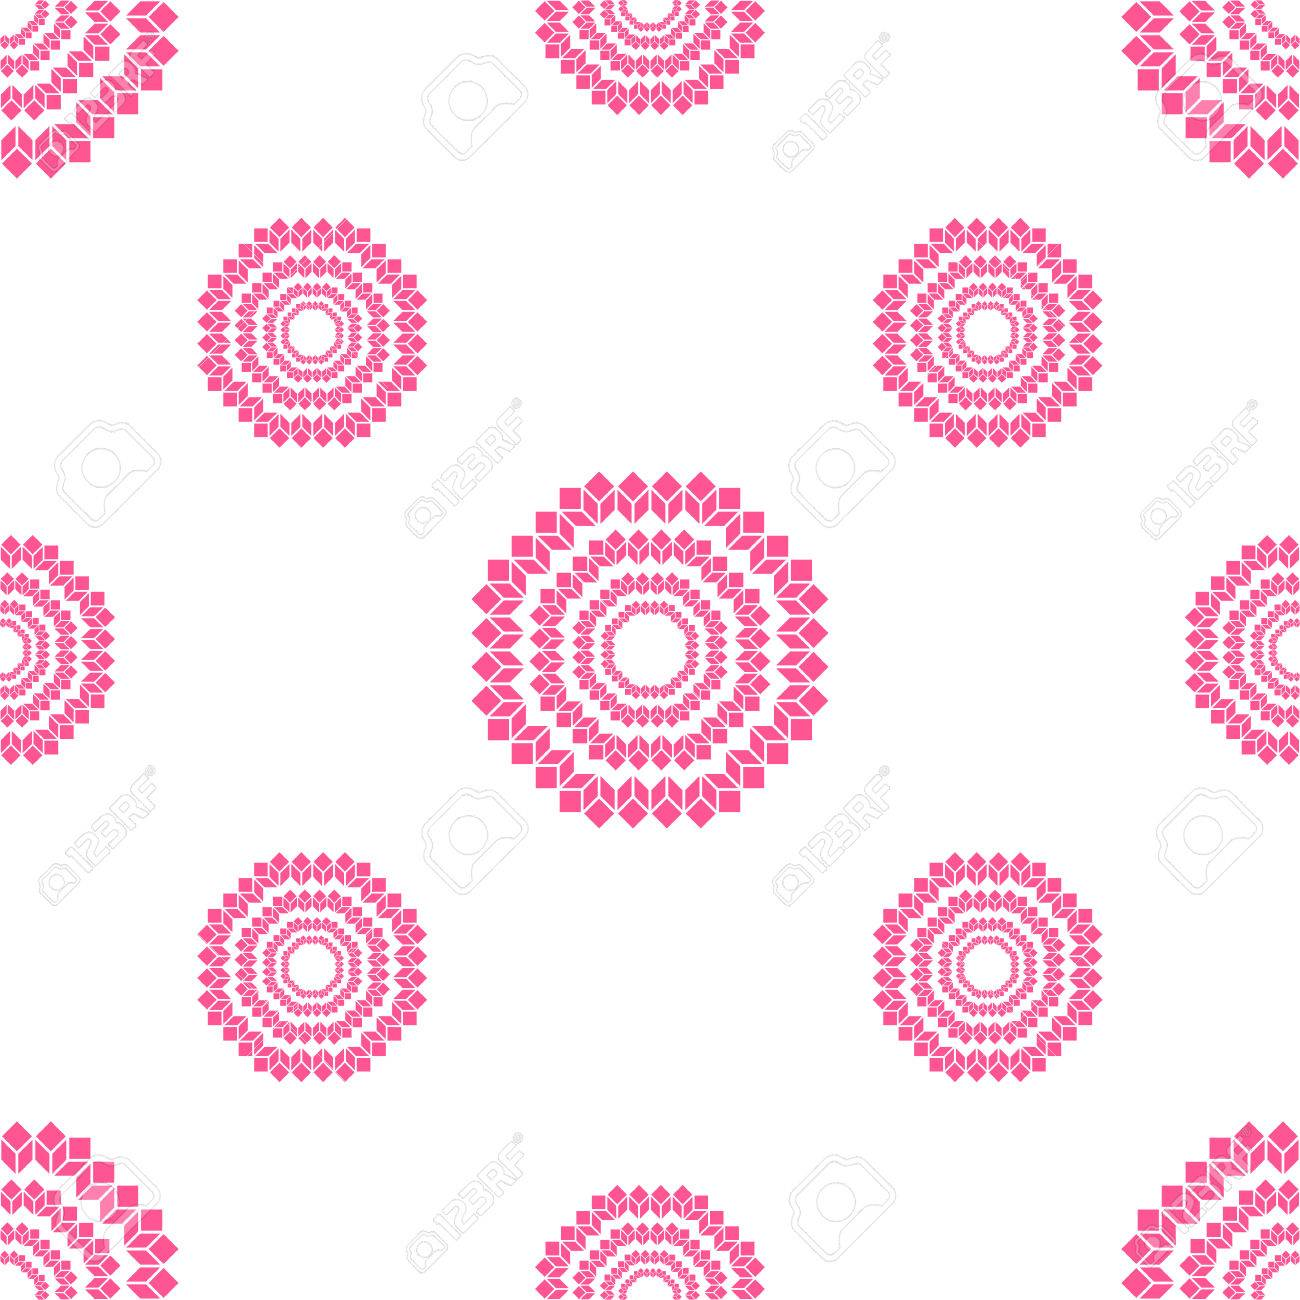 Pink Geometric Flower Wallpaper Pattern Isolated On White Background